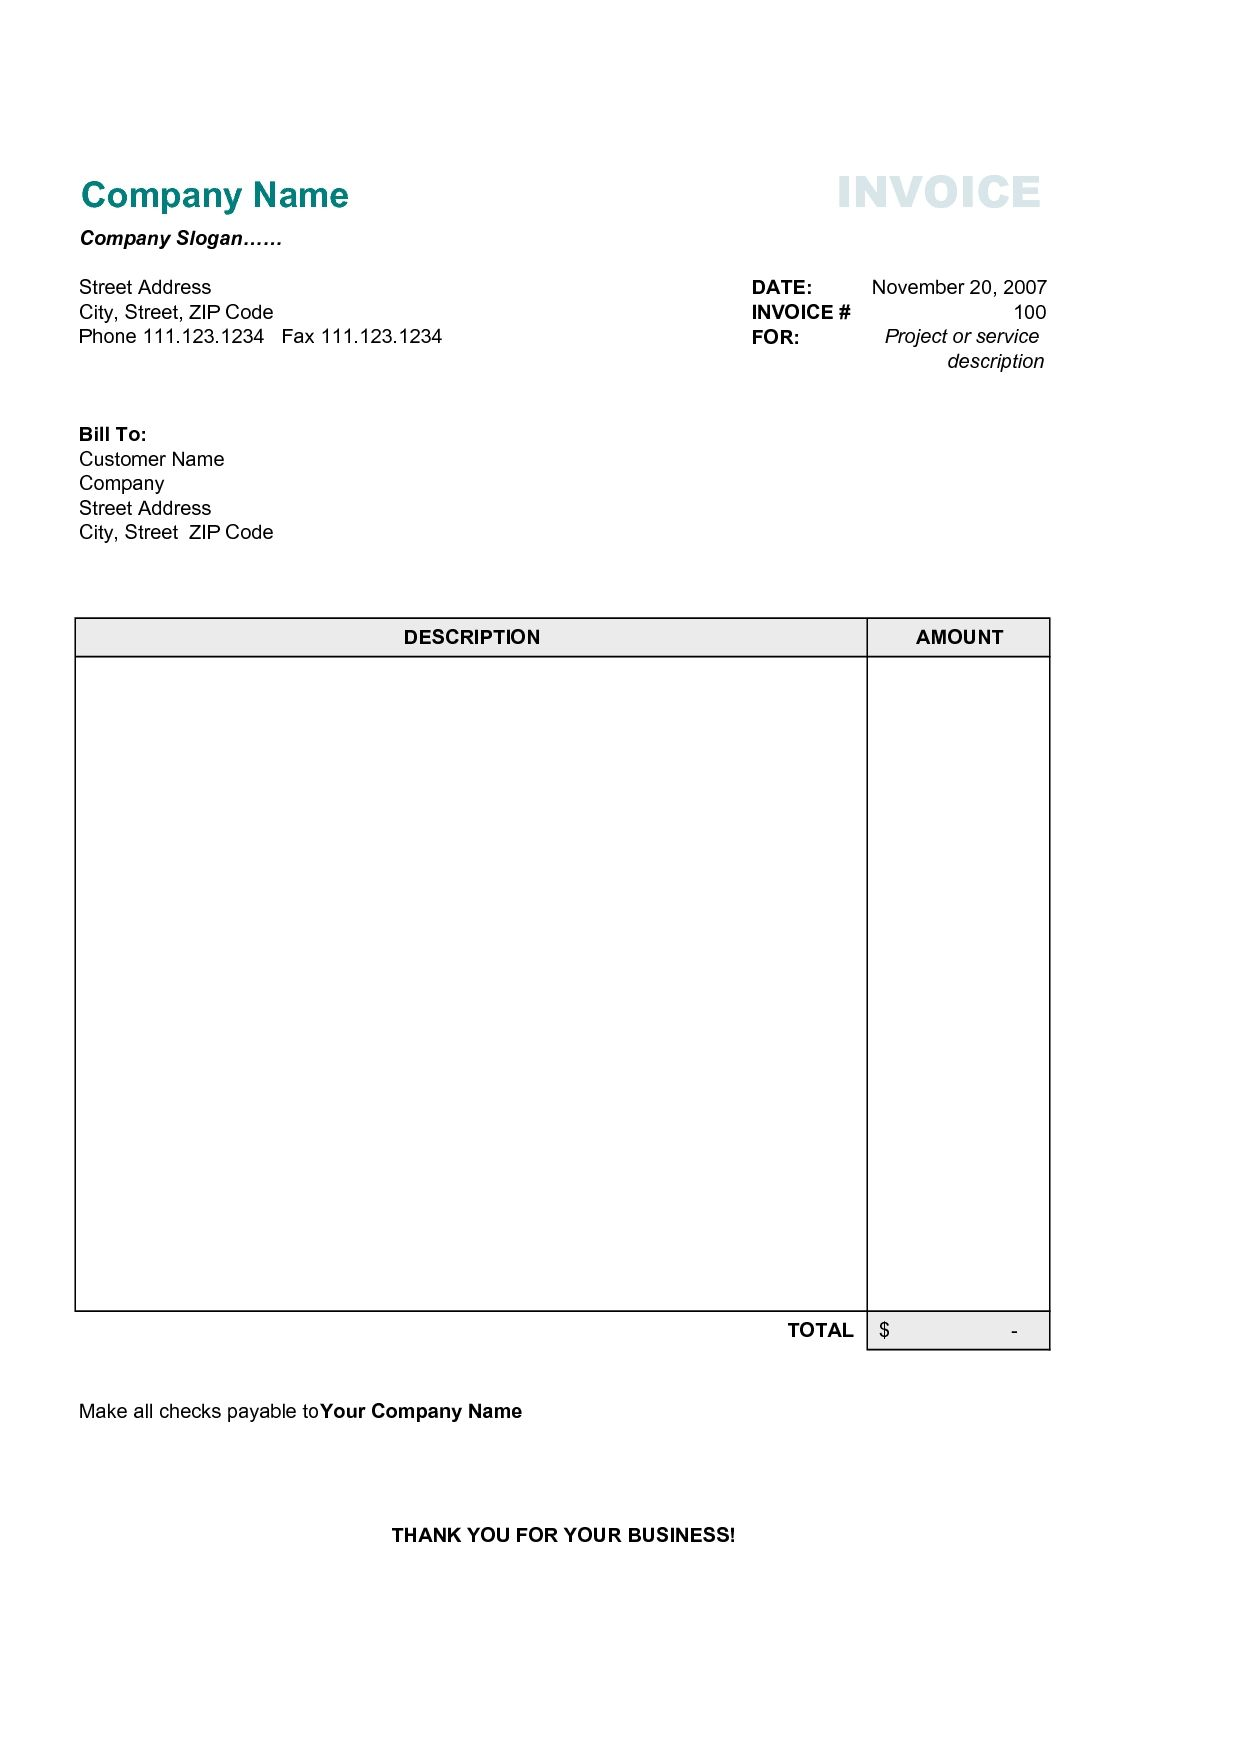 Free Business Invoice Template Best Business Template Free Invoice - Invoice sample template for service business